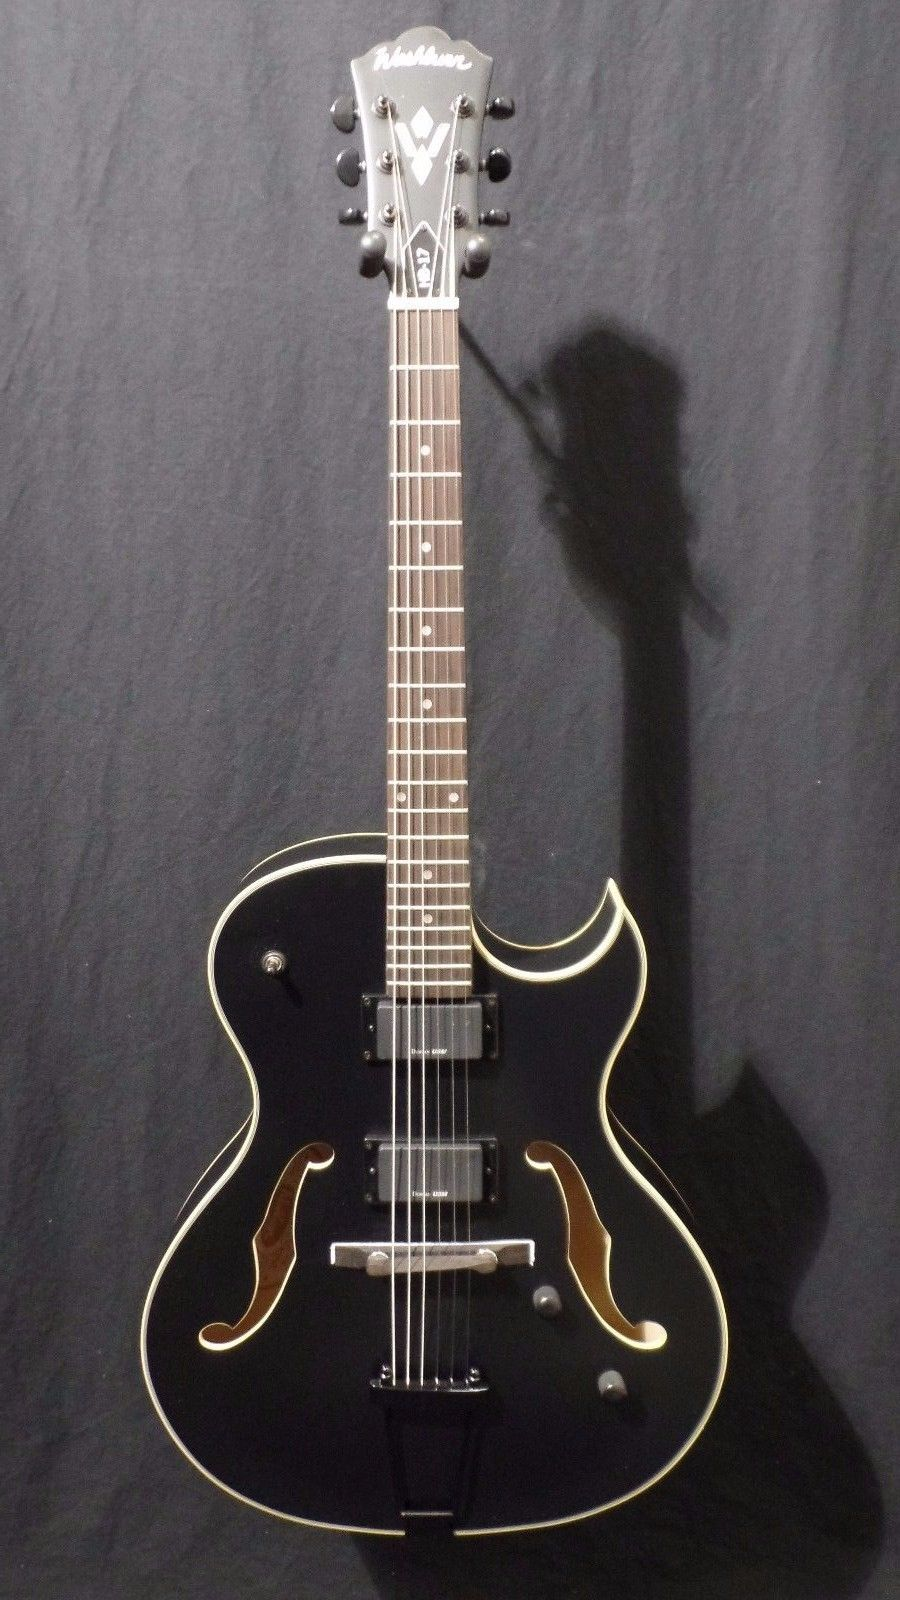 Washburn HB17CBK Hollowbody Electric Guitar in Black with Hardshell Case #1002